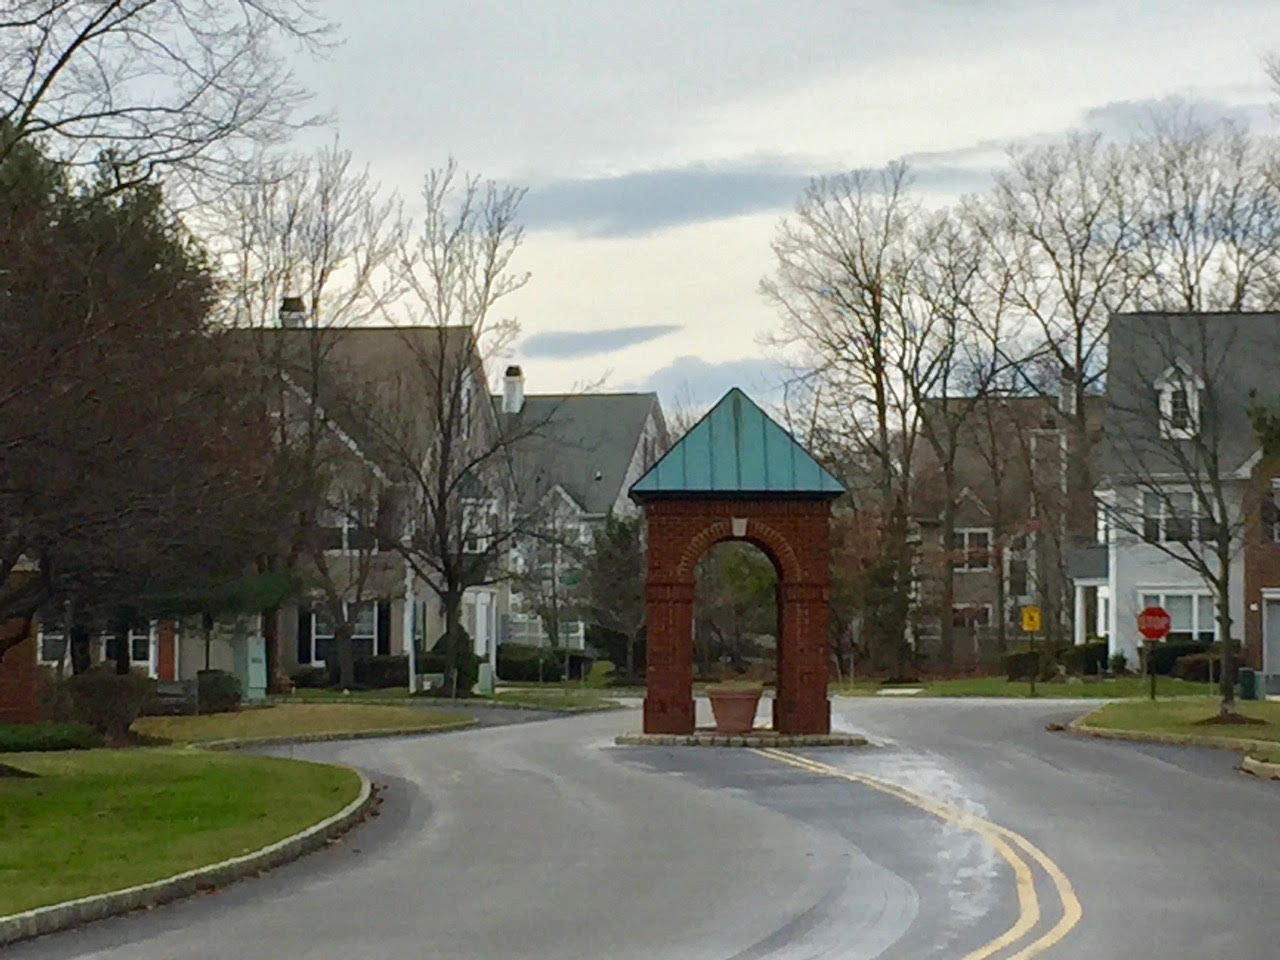 Entrance to Hidden Meadows, a pet friendly community.